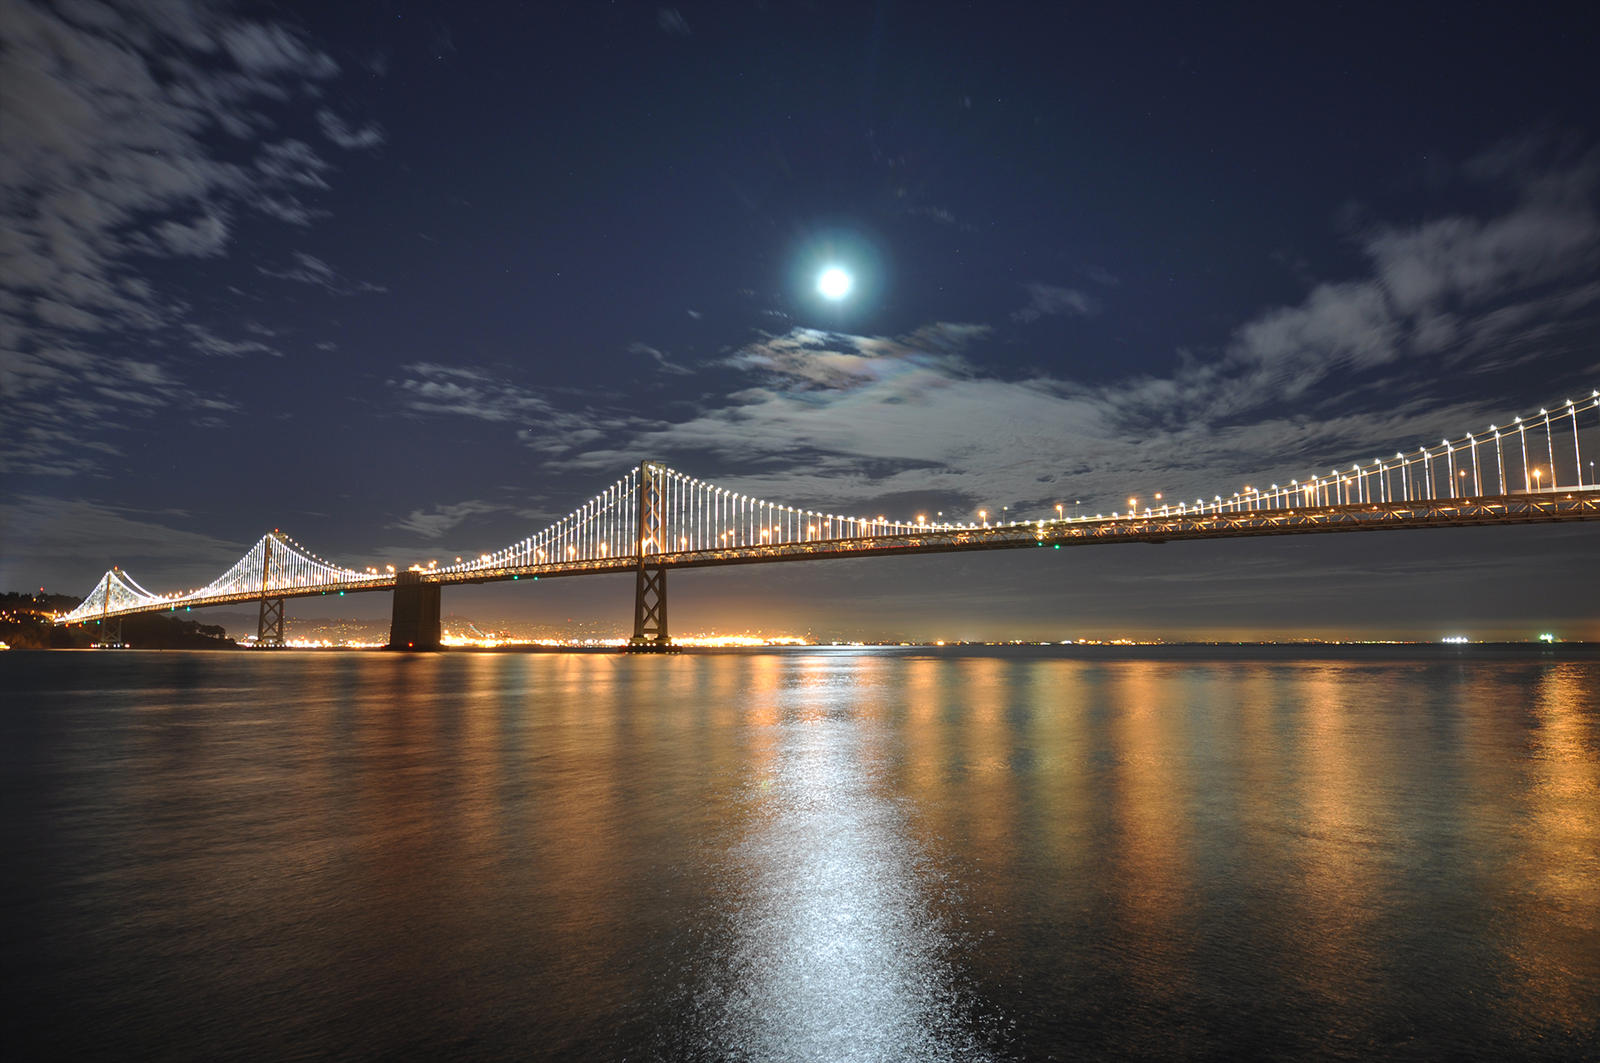 Full moon over bay bridge by tt83x